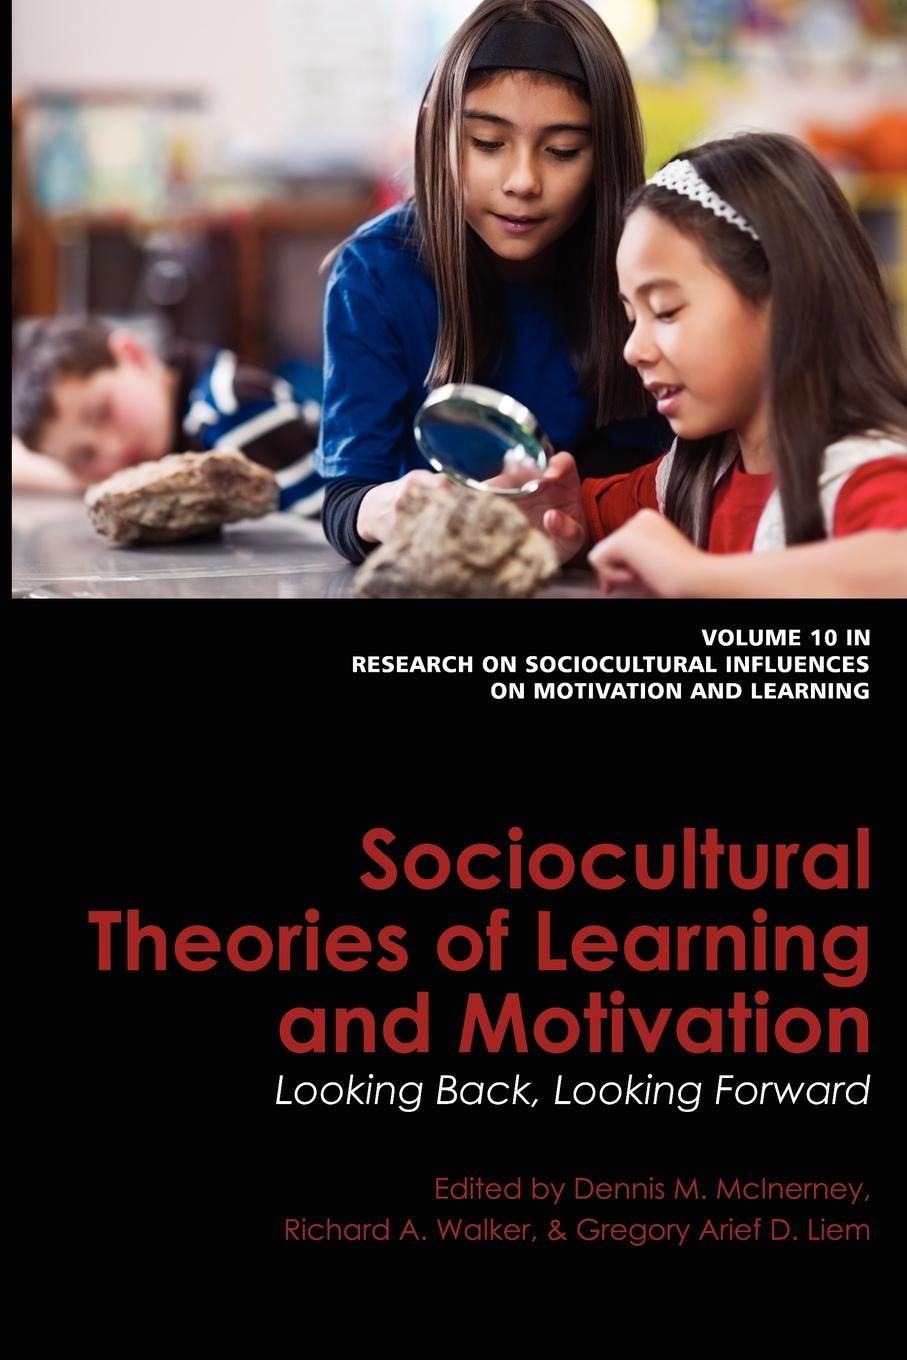 Sociocultural Theories of Learning and Motivation. Looking Back, Looking Forward motivation and action